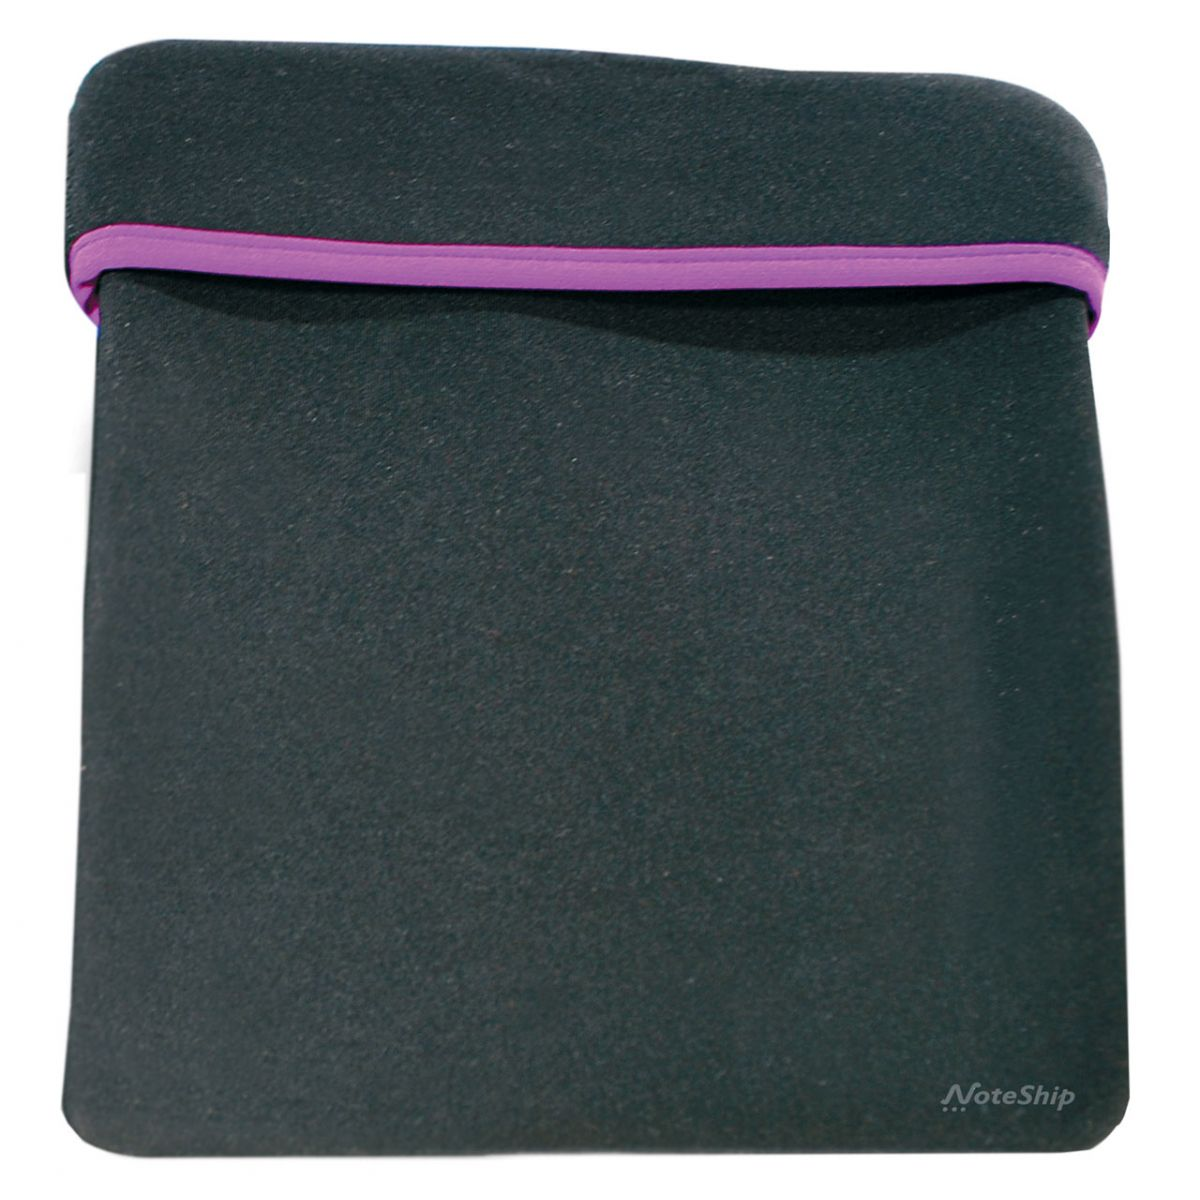 Case para Ultrabook 13.3 Glove Violeta Dupla Face 2623 - Leadership